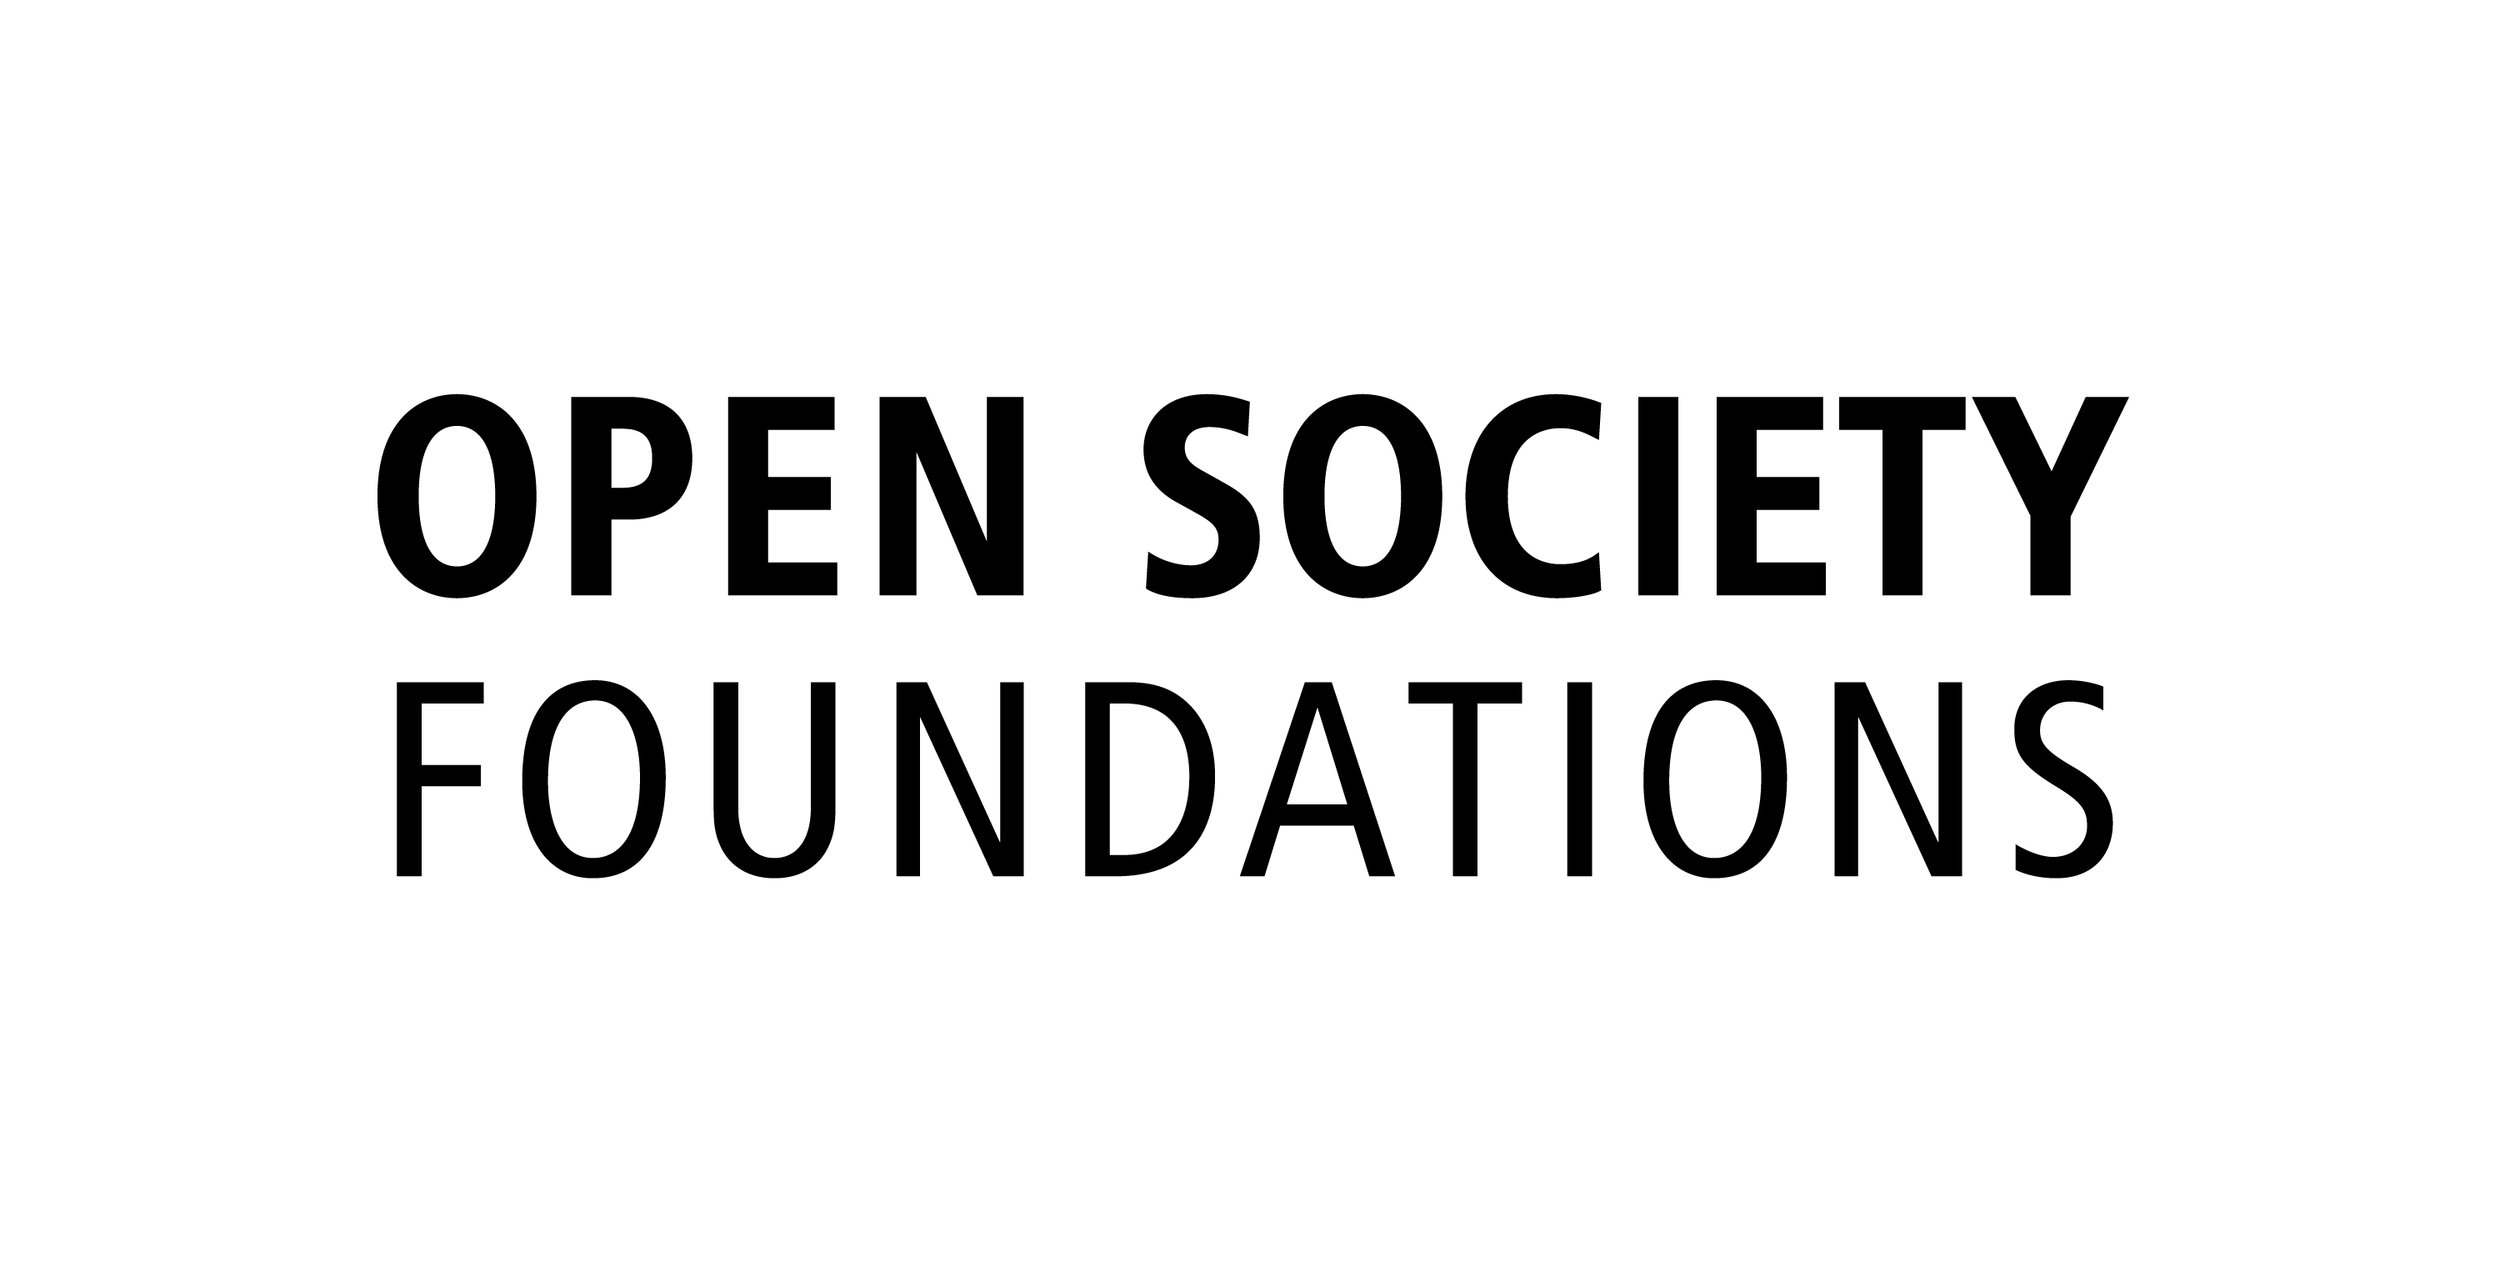 open_society_foundations-logo-2017_12_18-3000x1526 copy.jpg